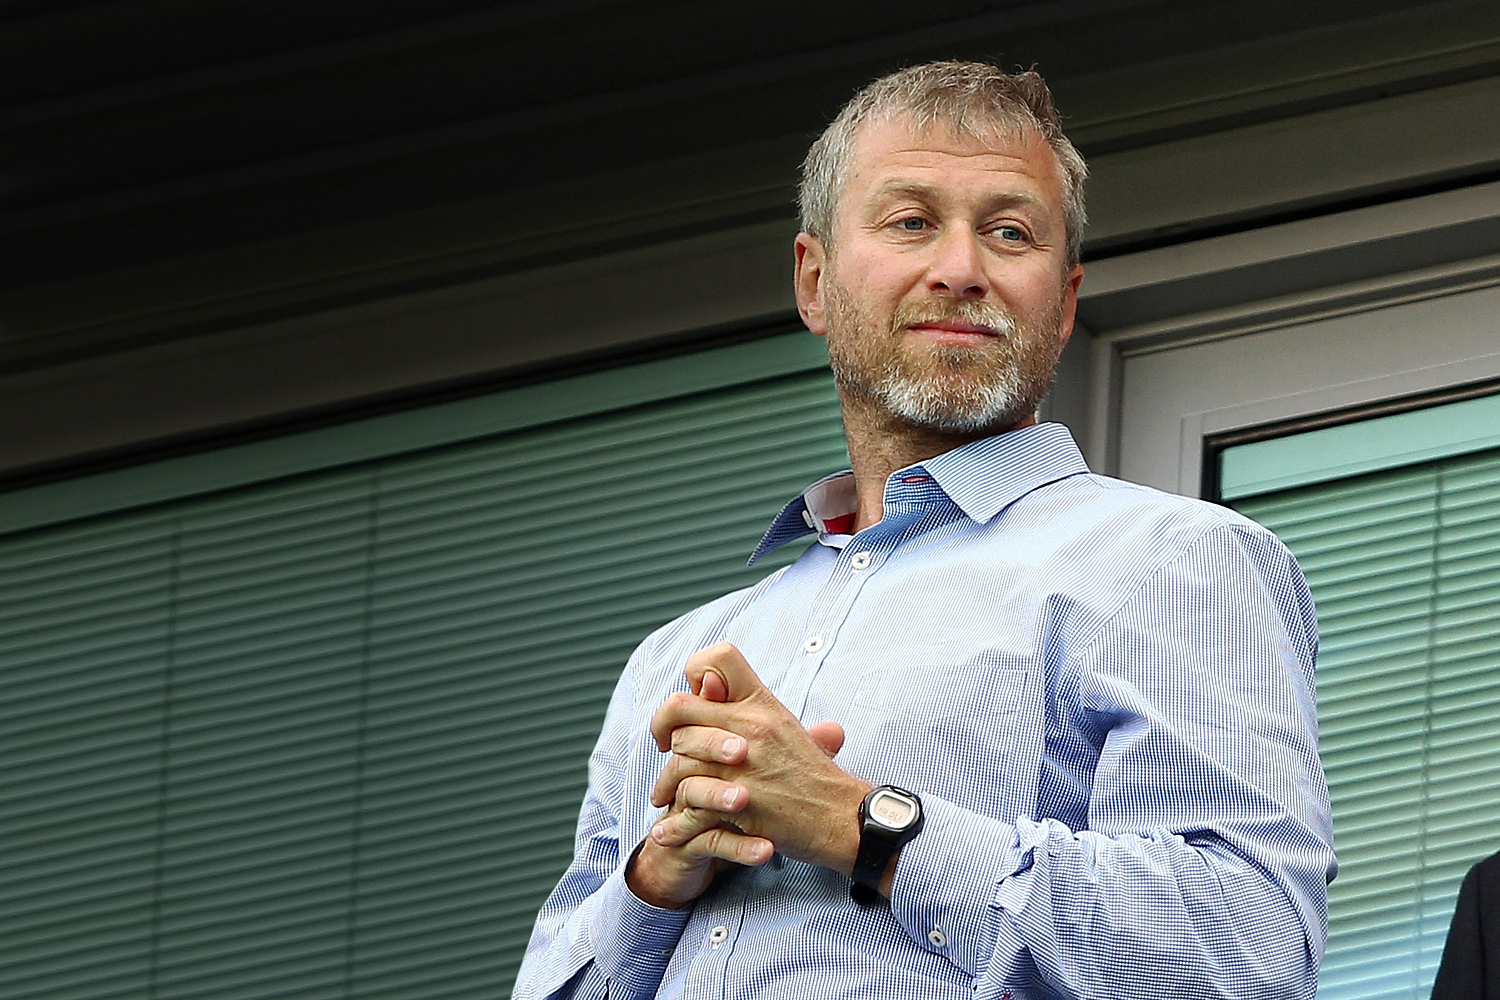 Chelsea owner Roman Abramovich 'granted Israeli citizenship'